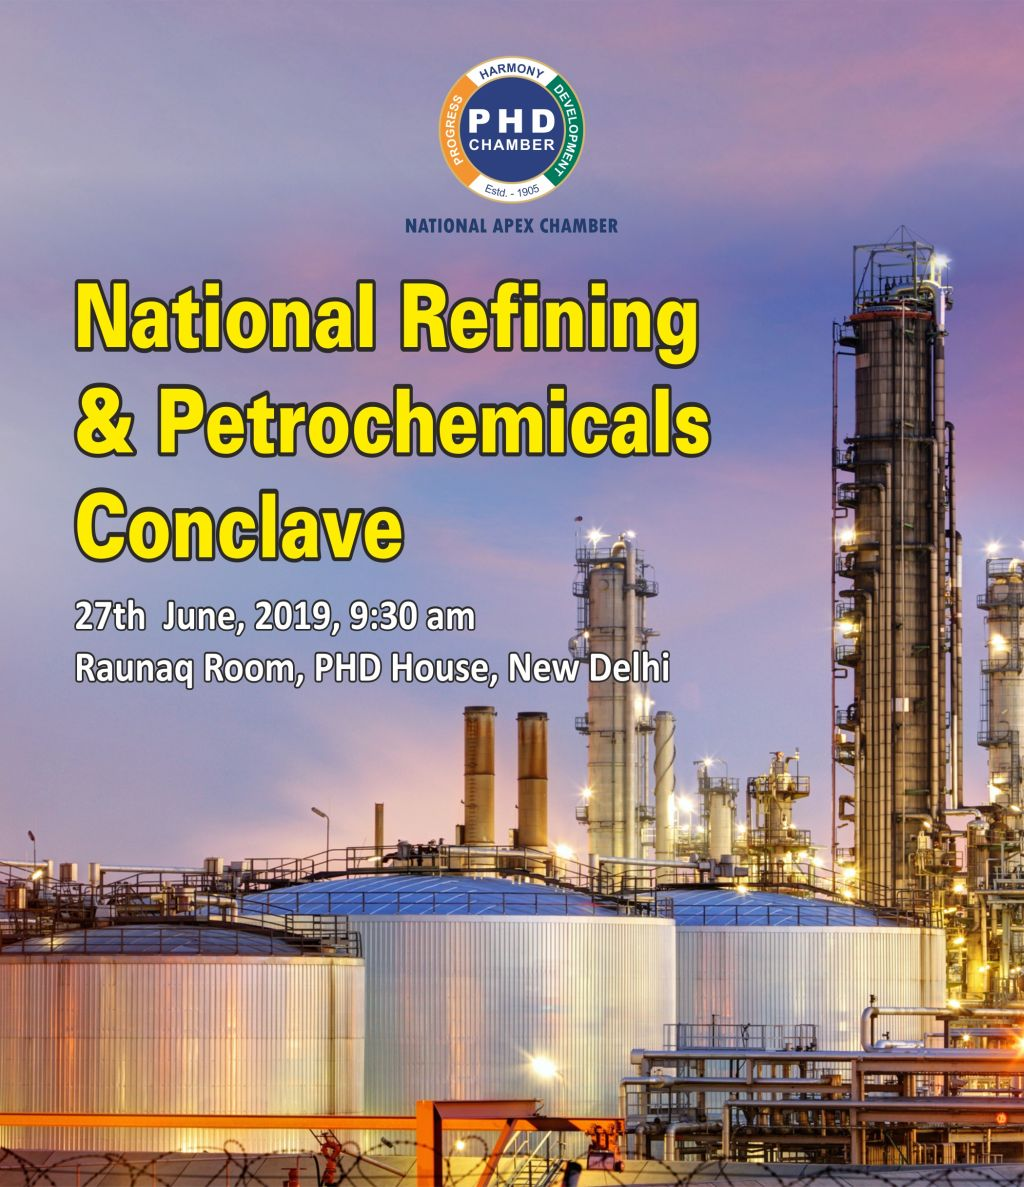 National Refining & Petrochemicals Conclave